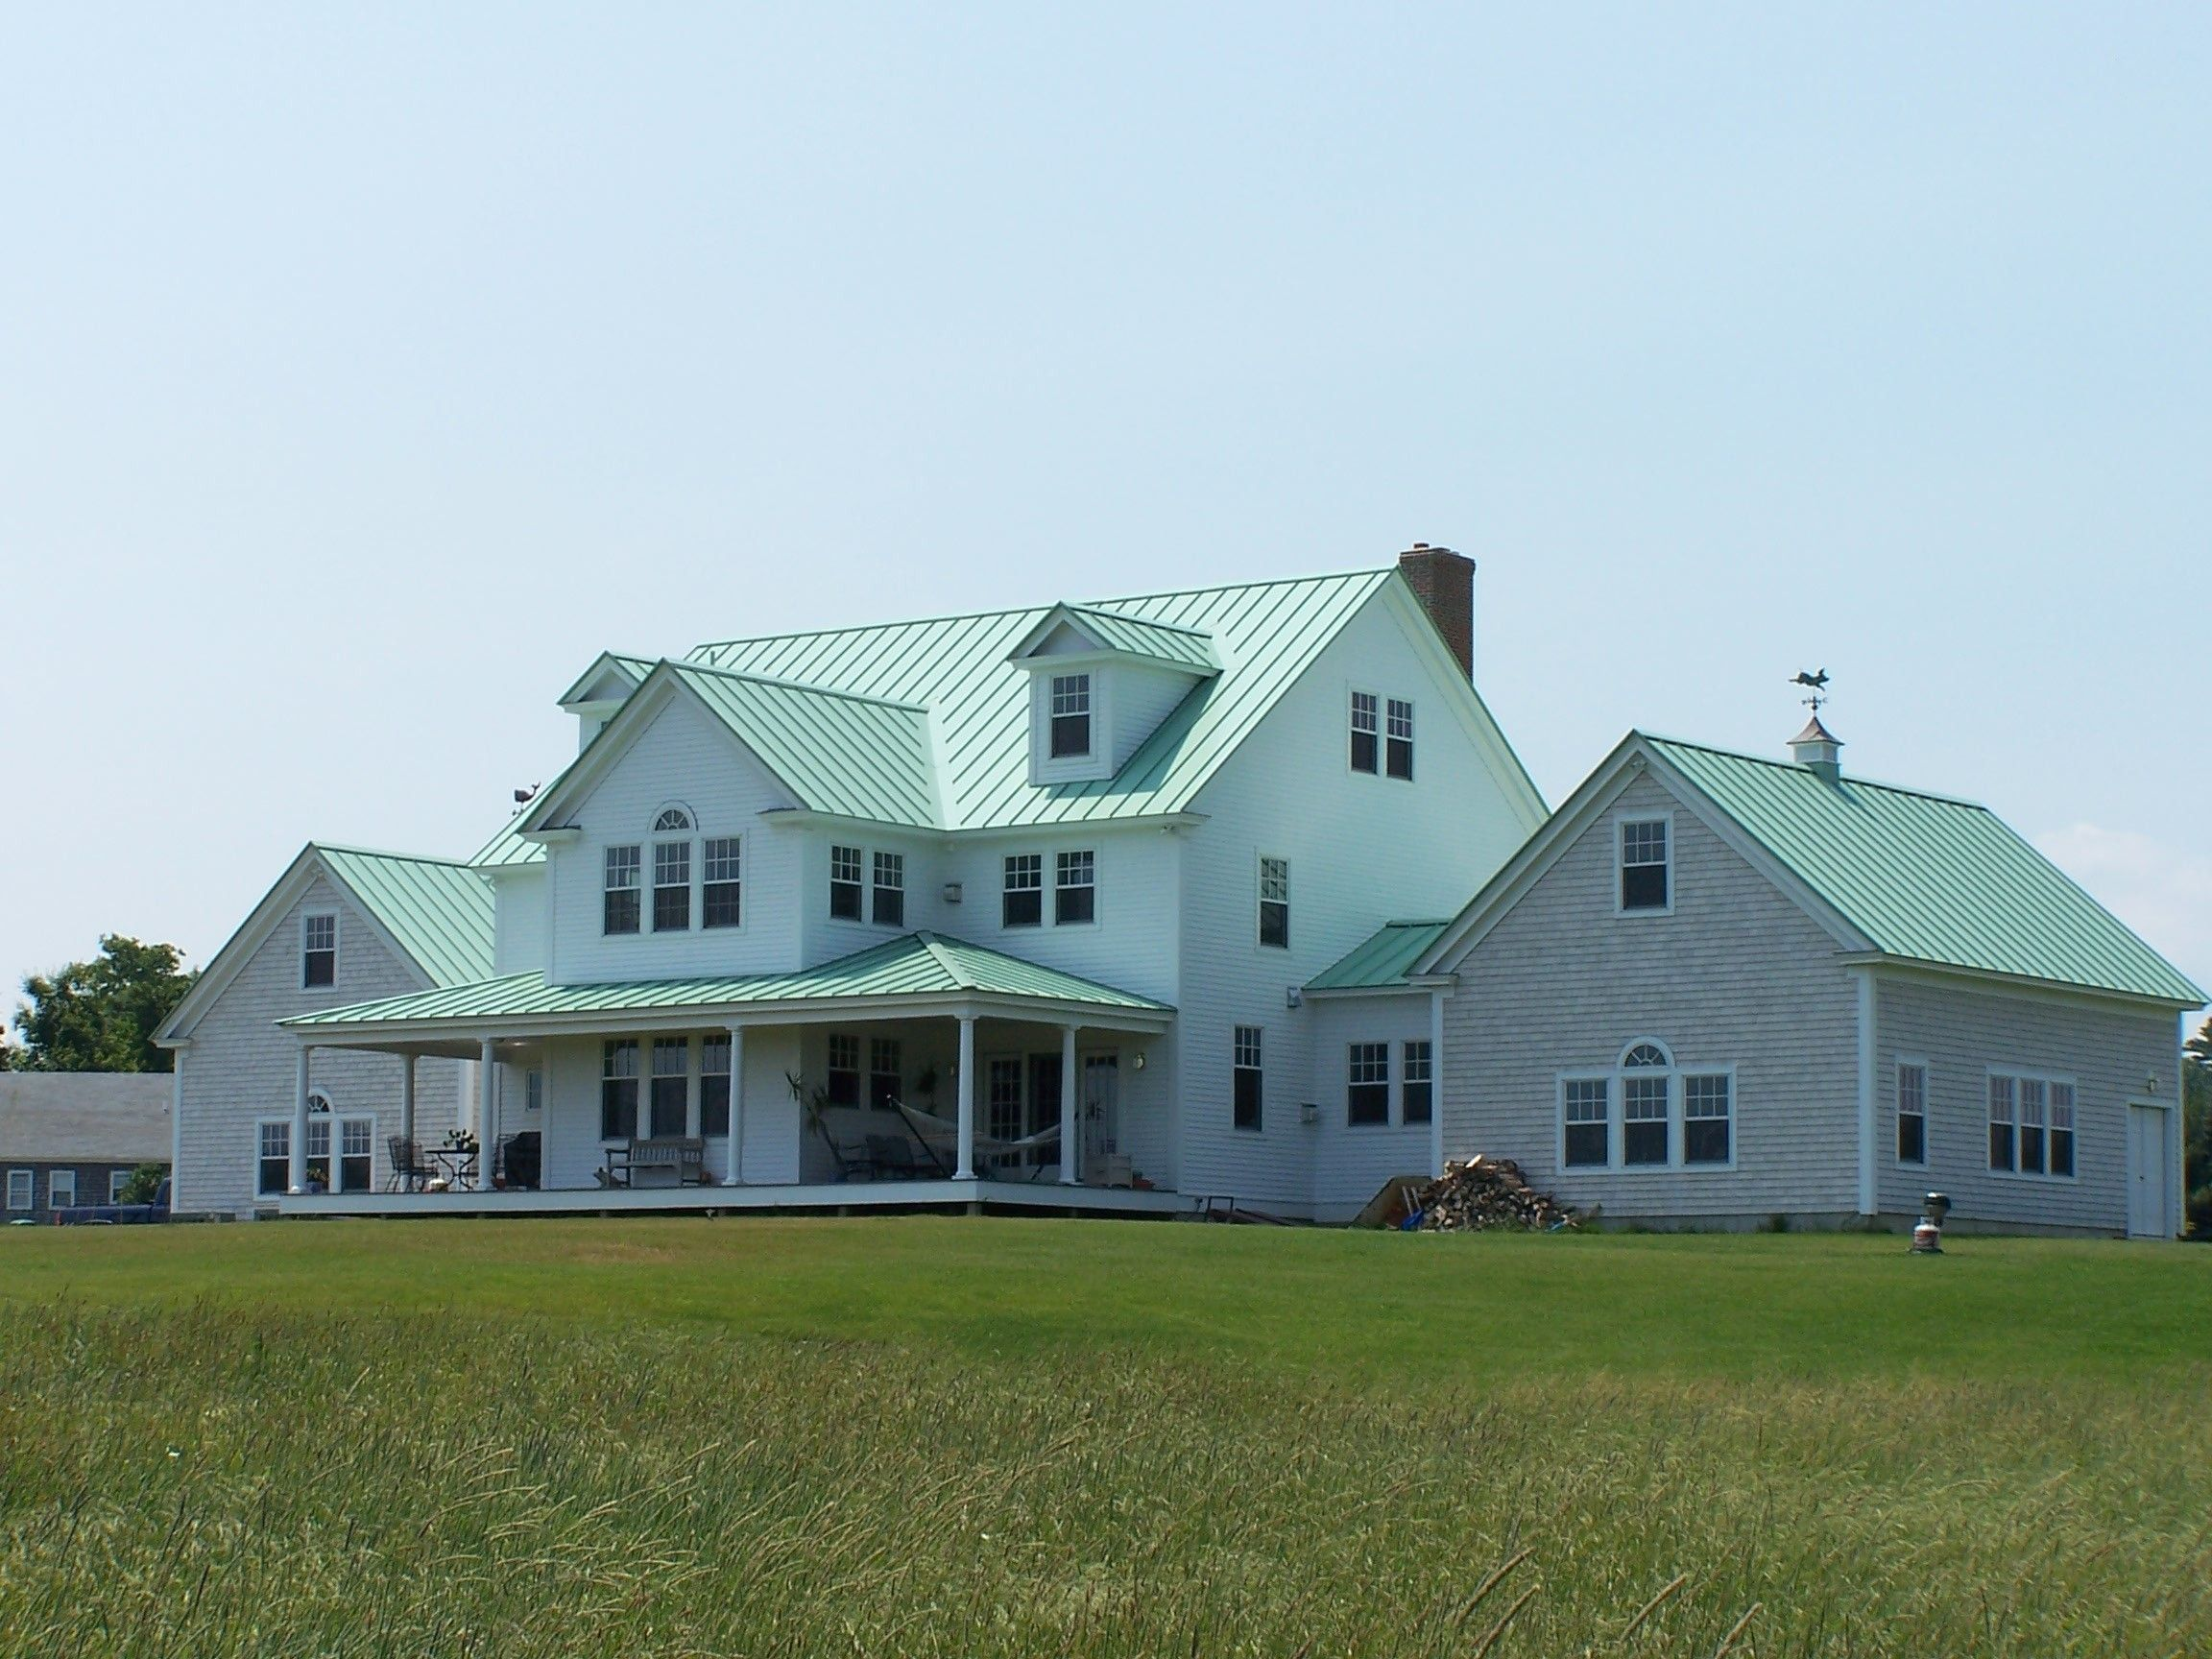 Zinc The Dark Horse Of Metal Roofing Zinc Roof Costs And Pros Cons Home Remodeling Costs Guide Zinc Roof Standing Seam Metal Roof Metal Roof